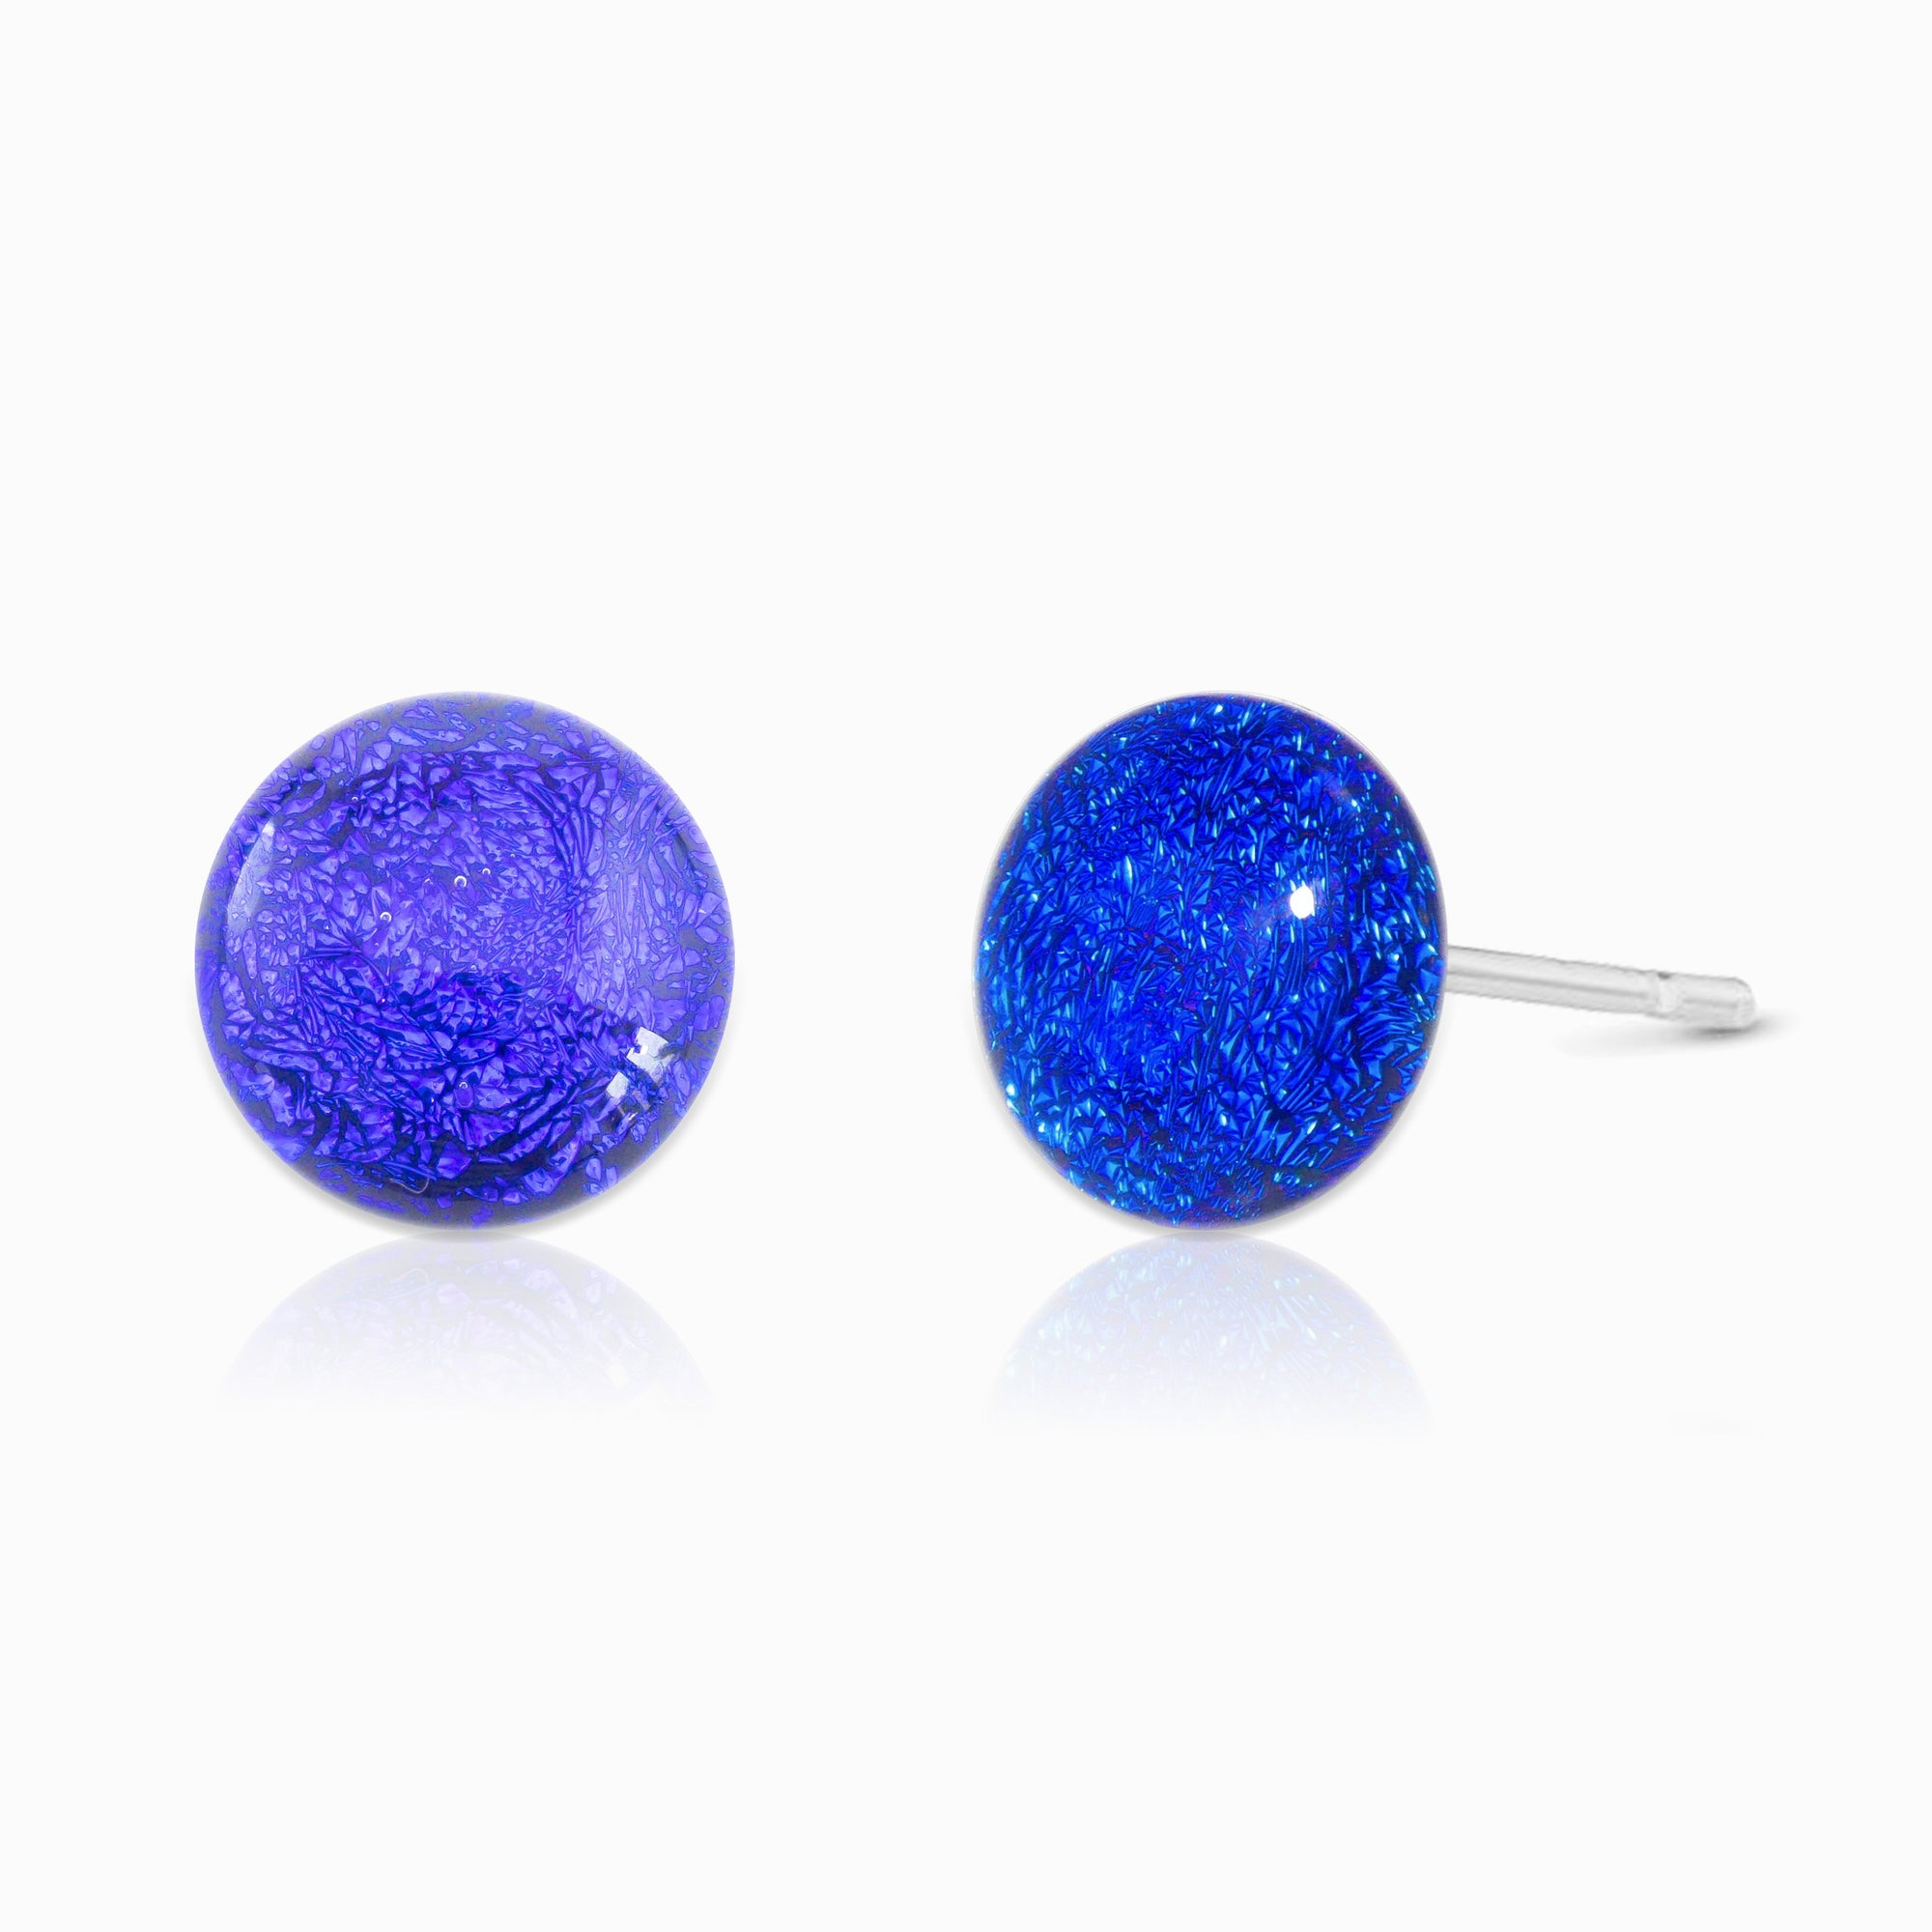 Microcosmoses EARRINGS GLASS REFLET EARRINGS STARRY BLUE ~ INDIGO | ECLIPSE | STUD | REFLET